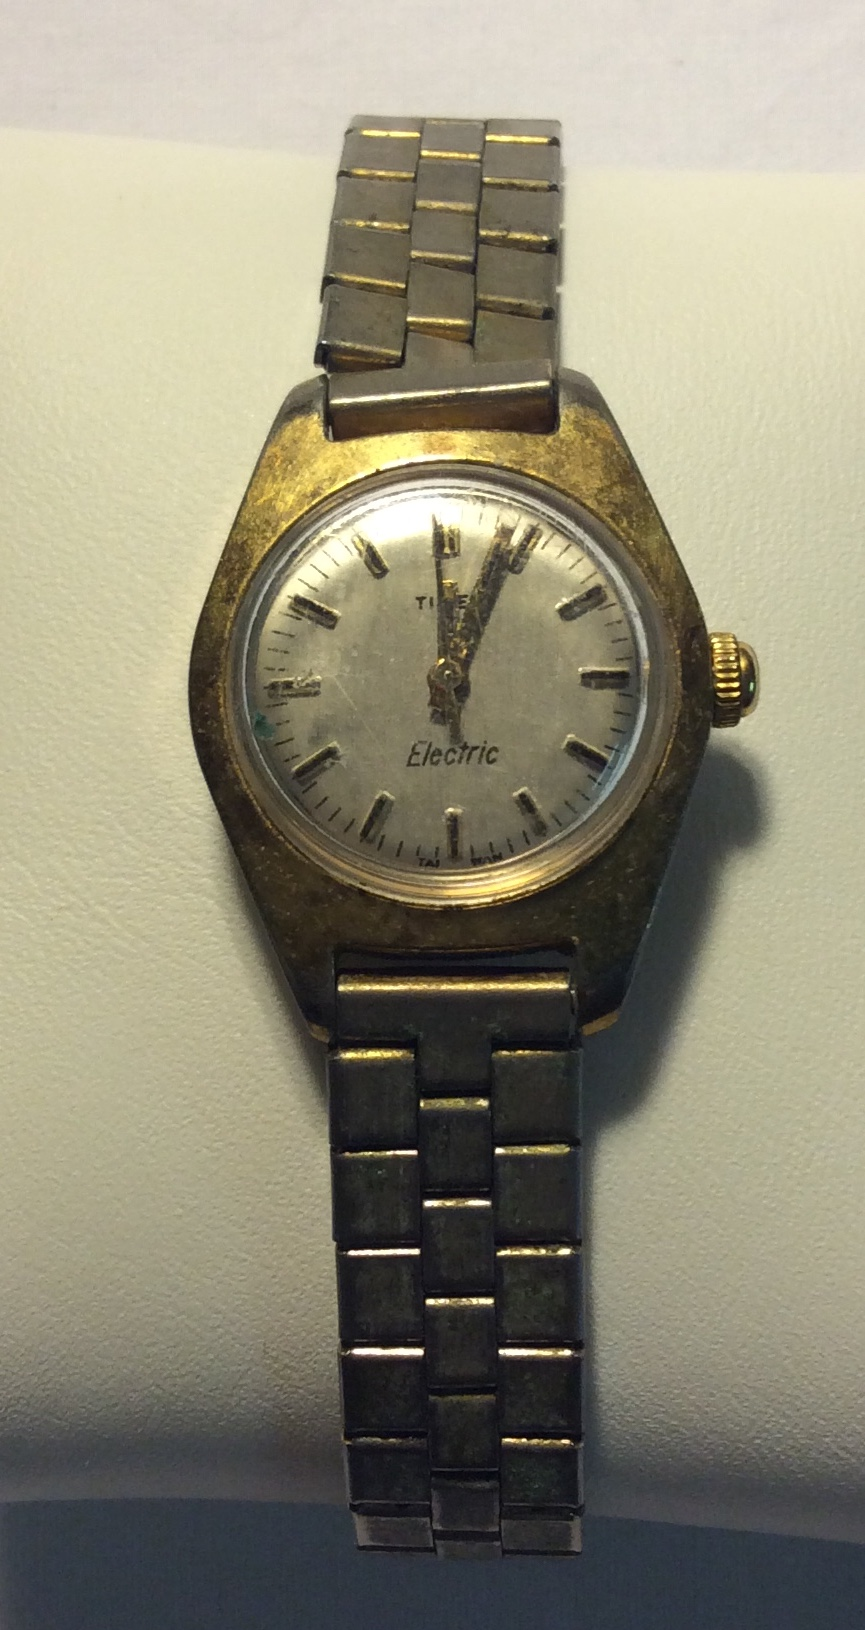 Timex watch - round pearl face